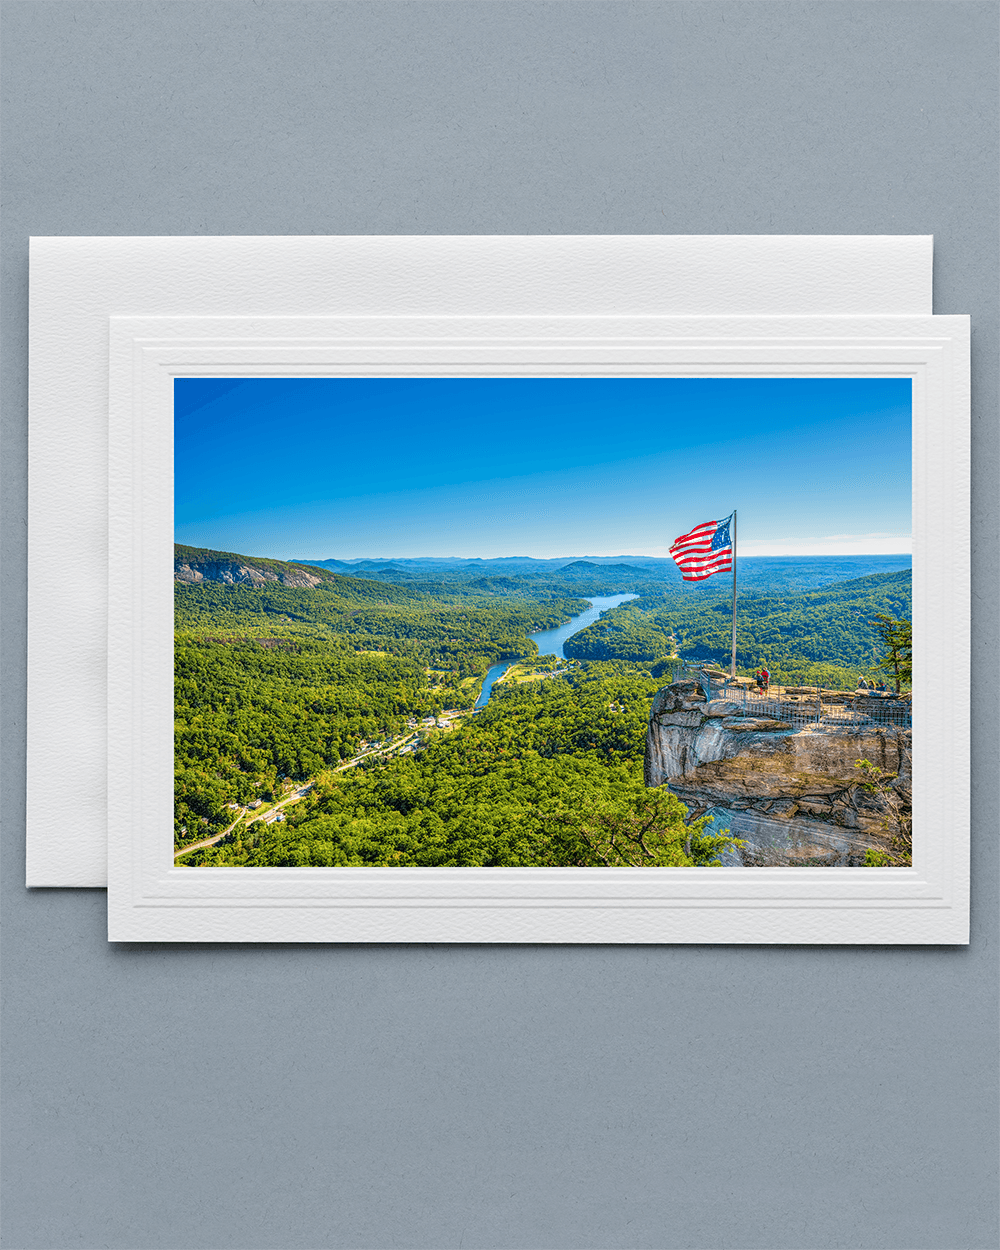 Lavilo Greeting Card - Front Image of Chimney Rock